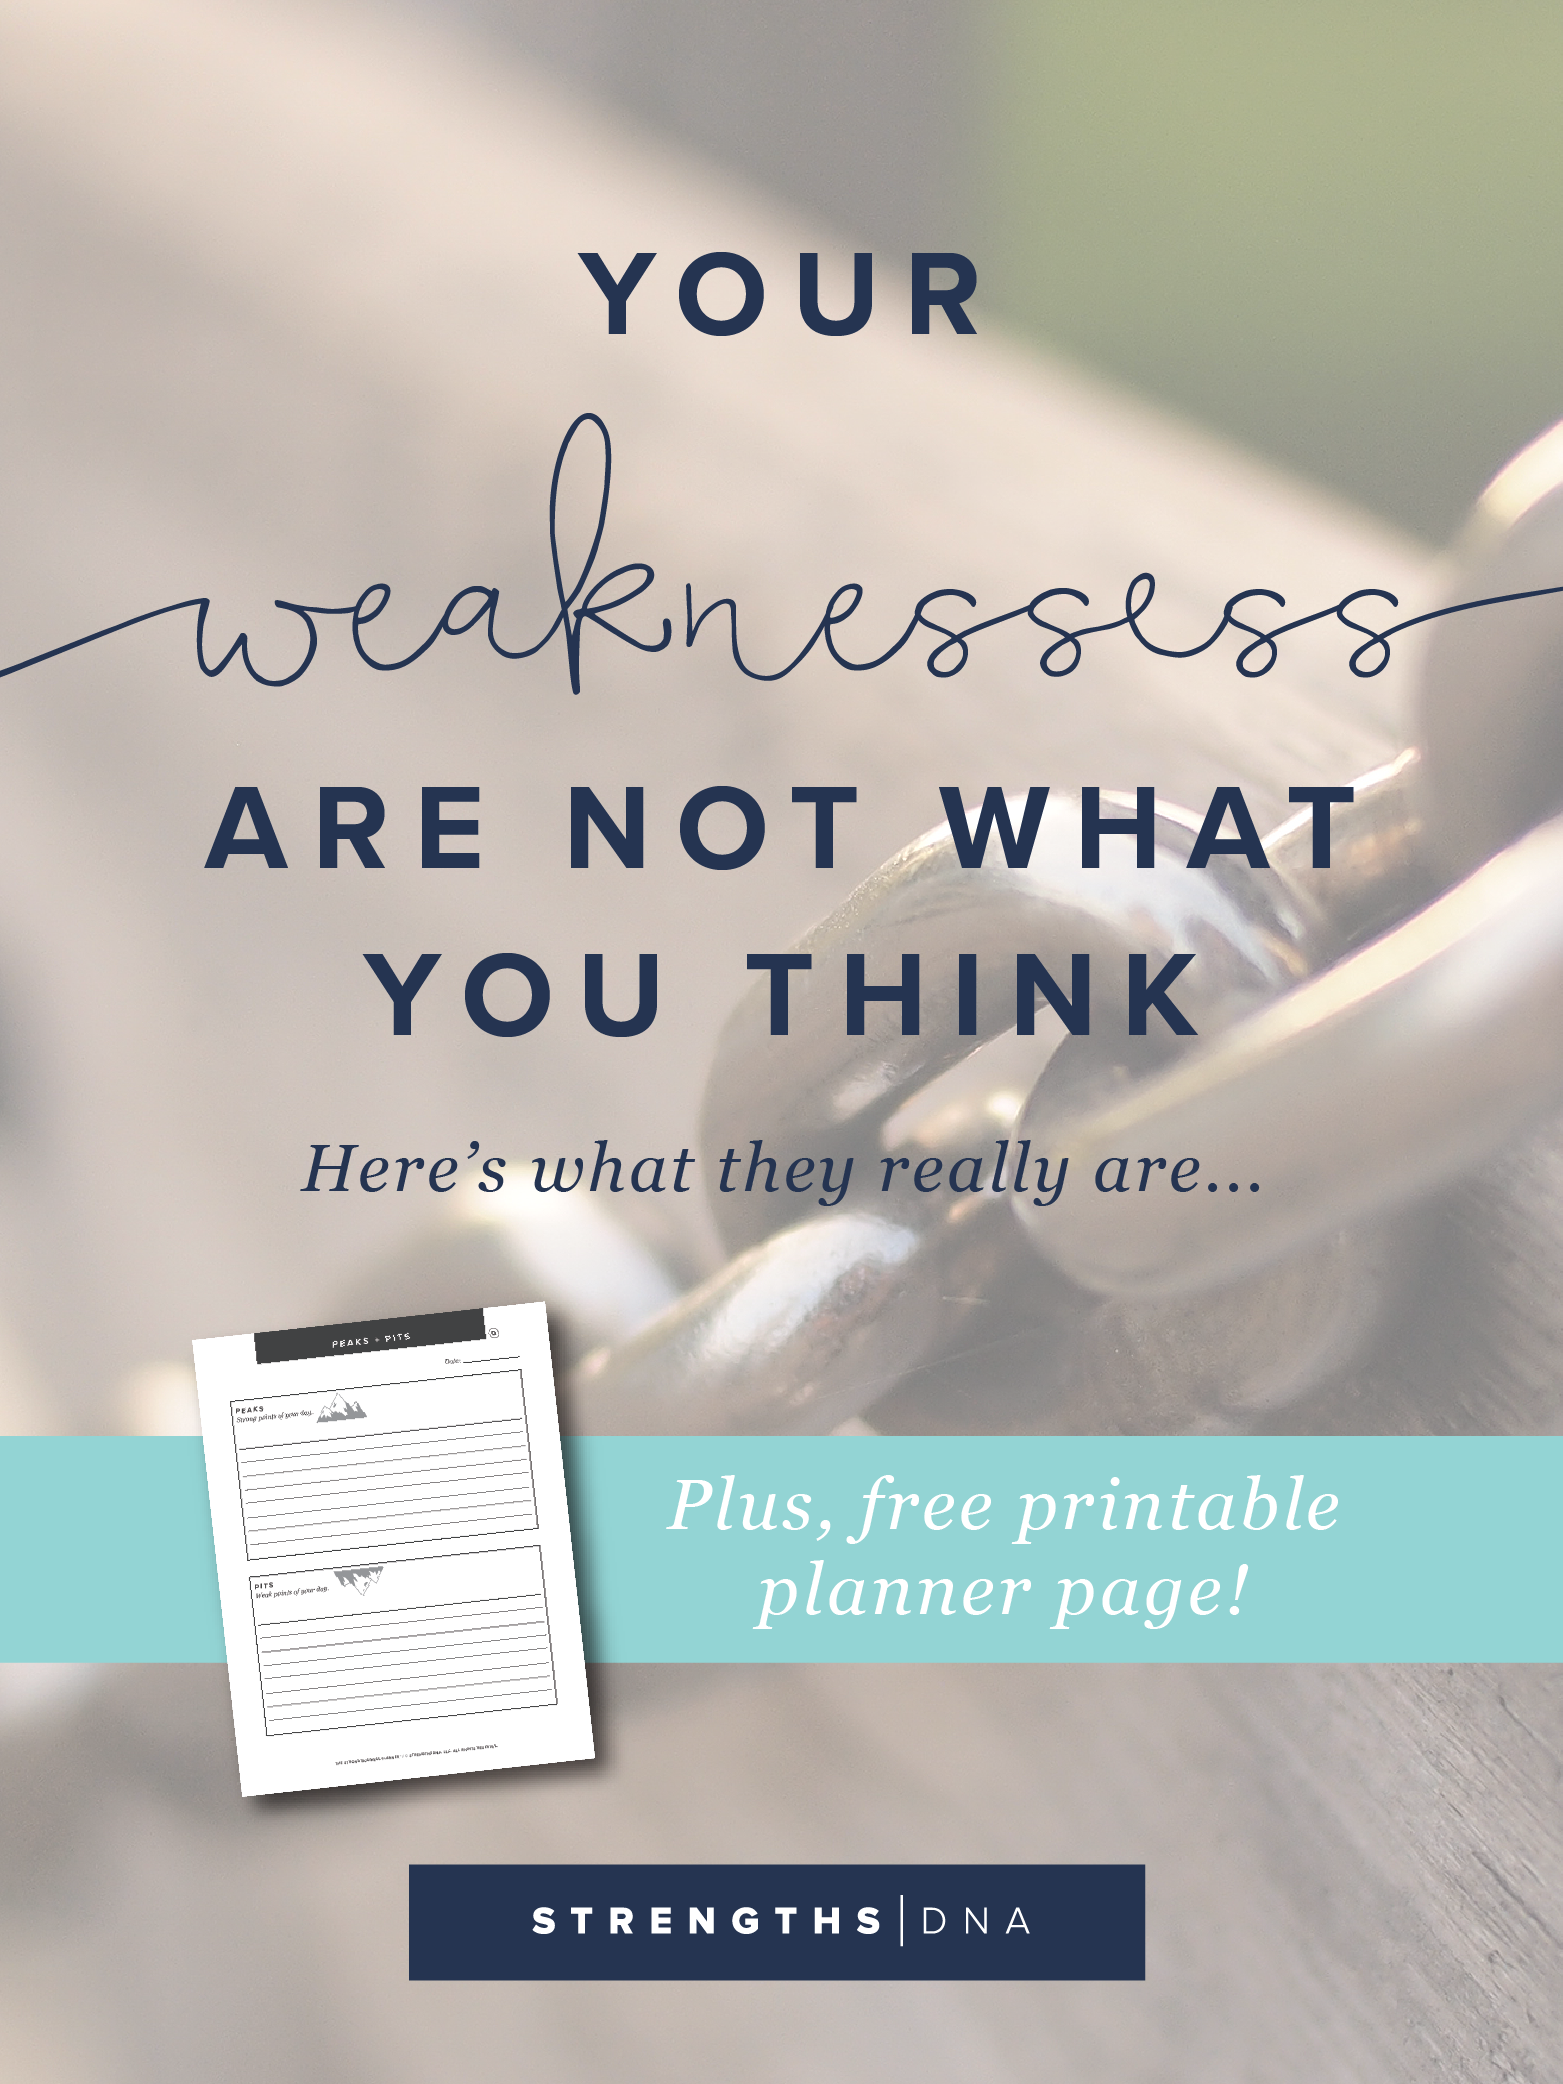 Your Weaknesses Are Not What You Think